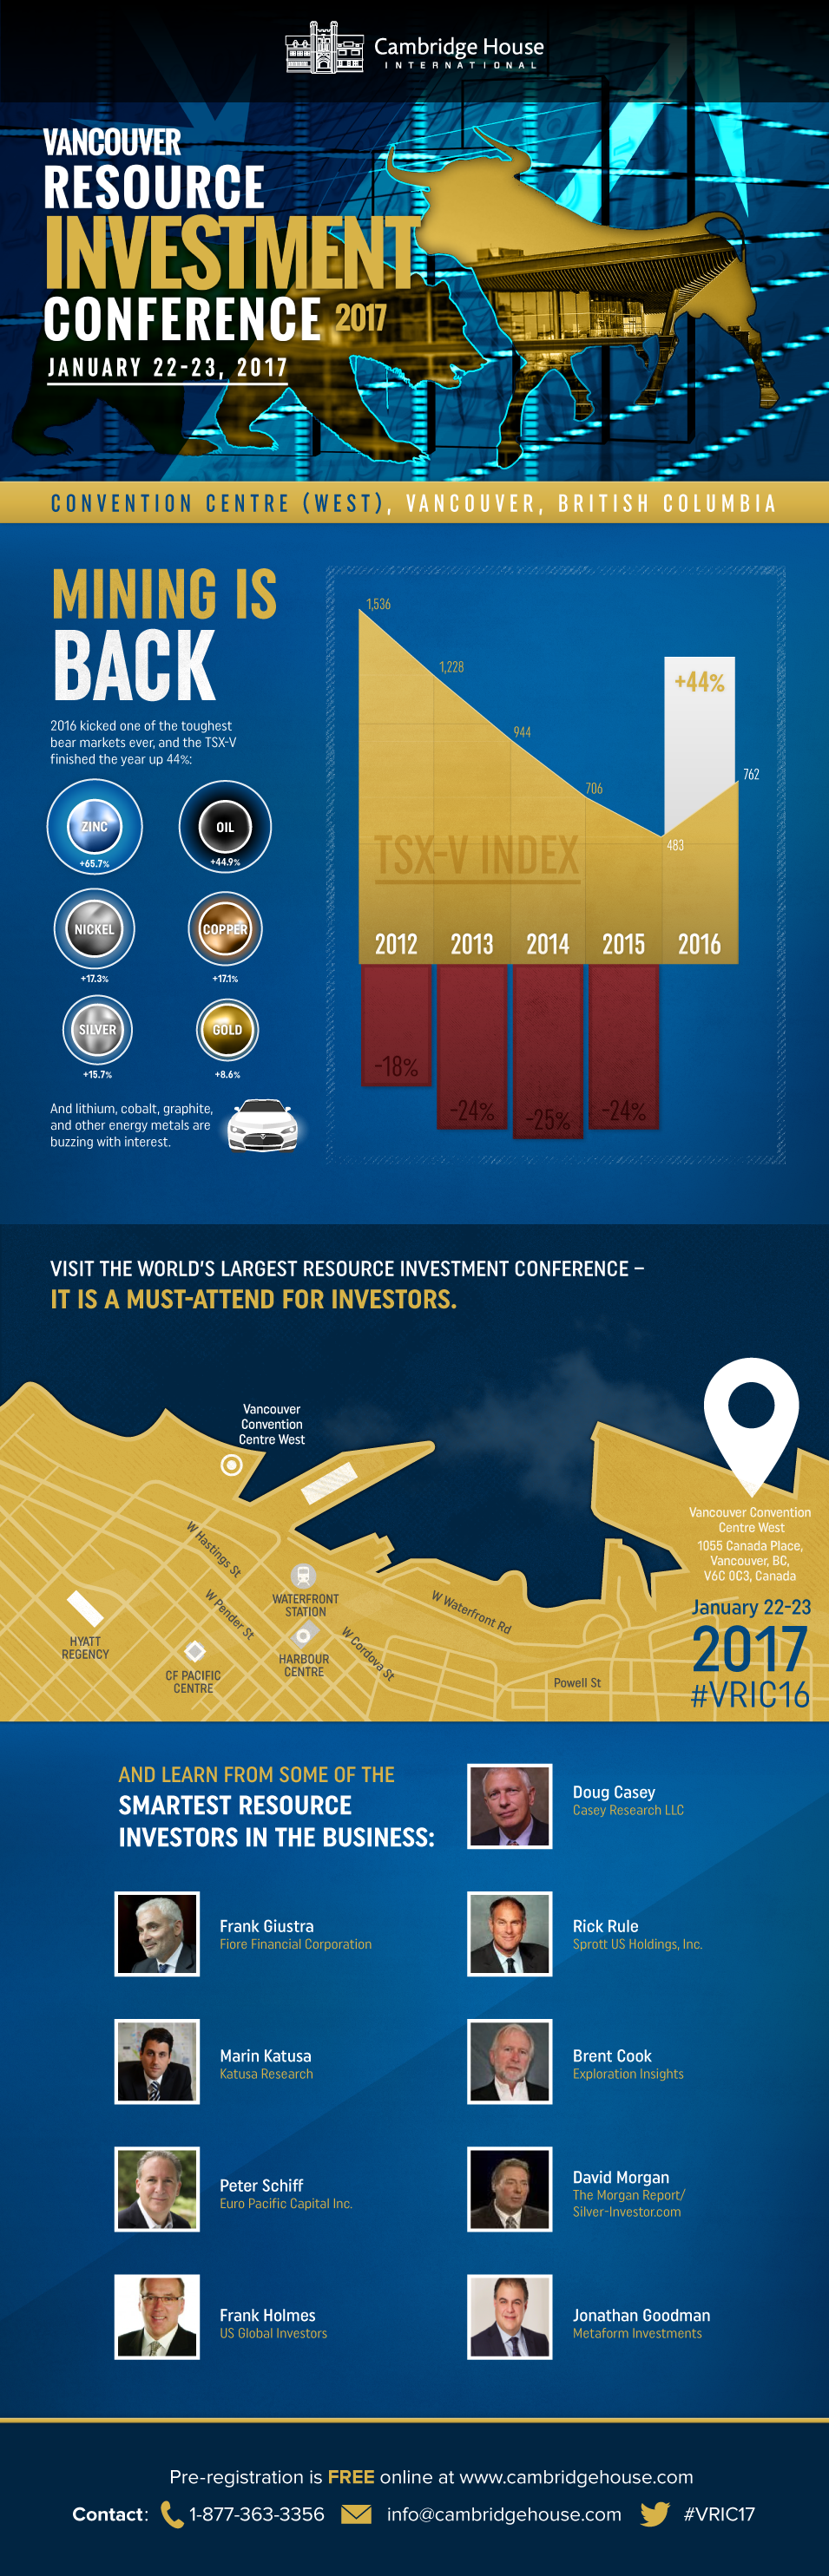 The Vancouver Resource Investment Conference 2017